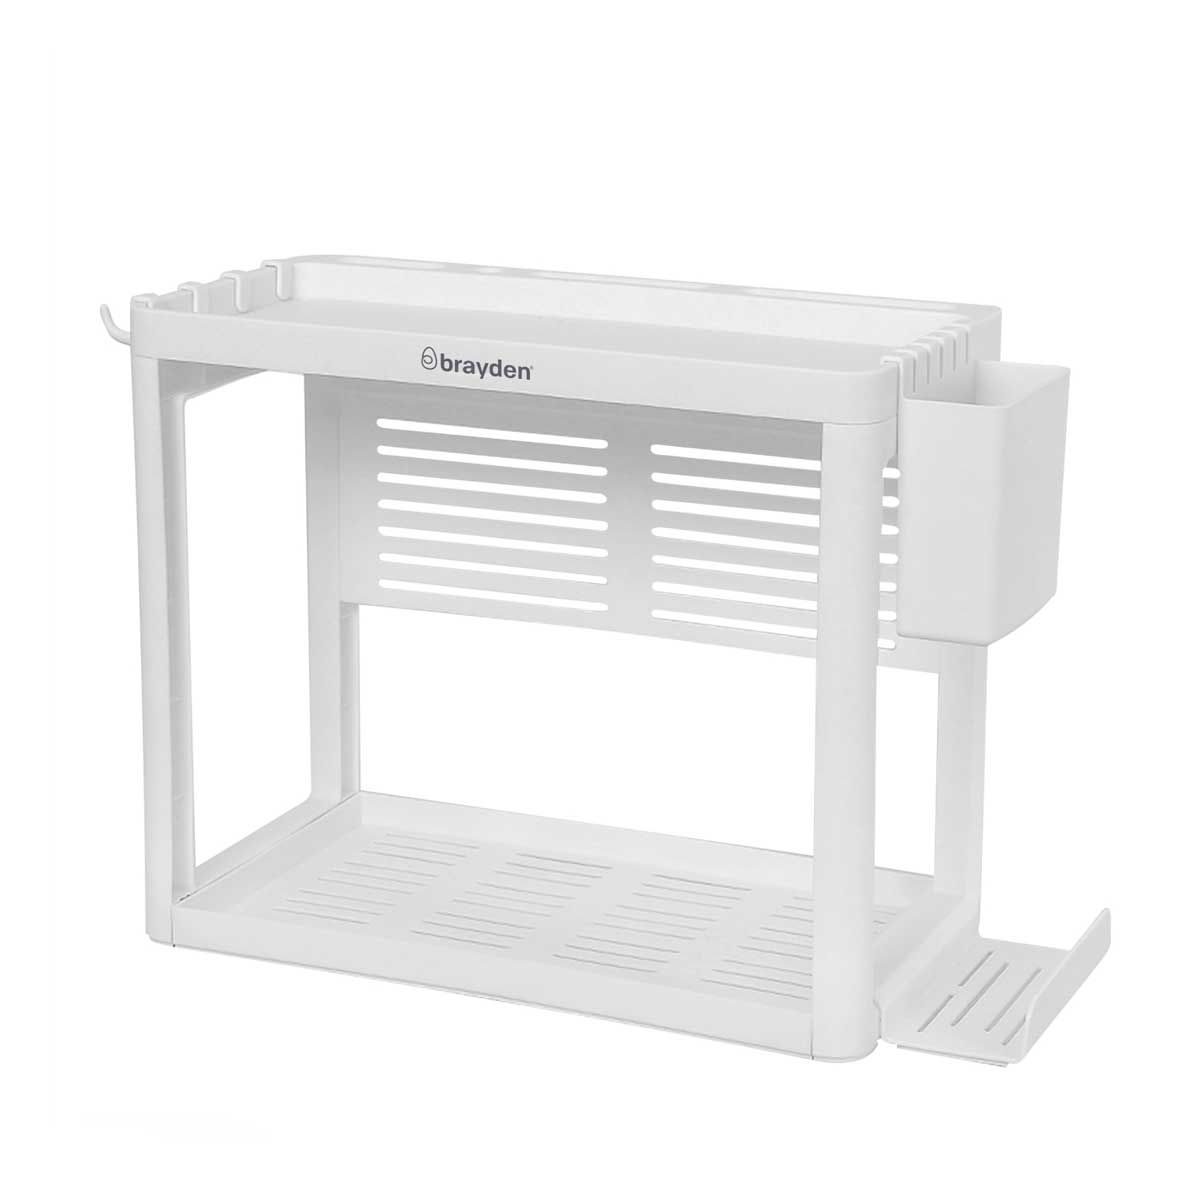 Brayden Minio E1704 – Multi-Functional Table Top Kitchen Organizers